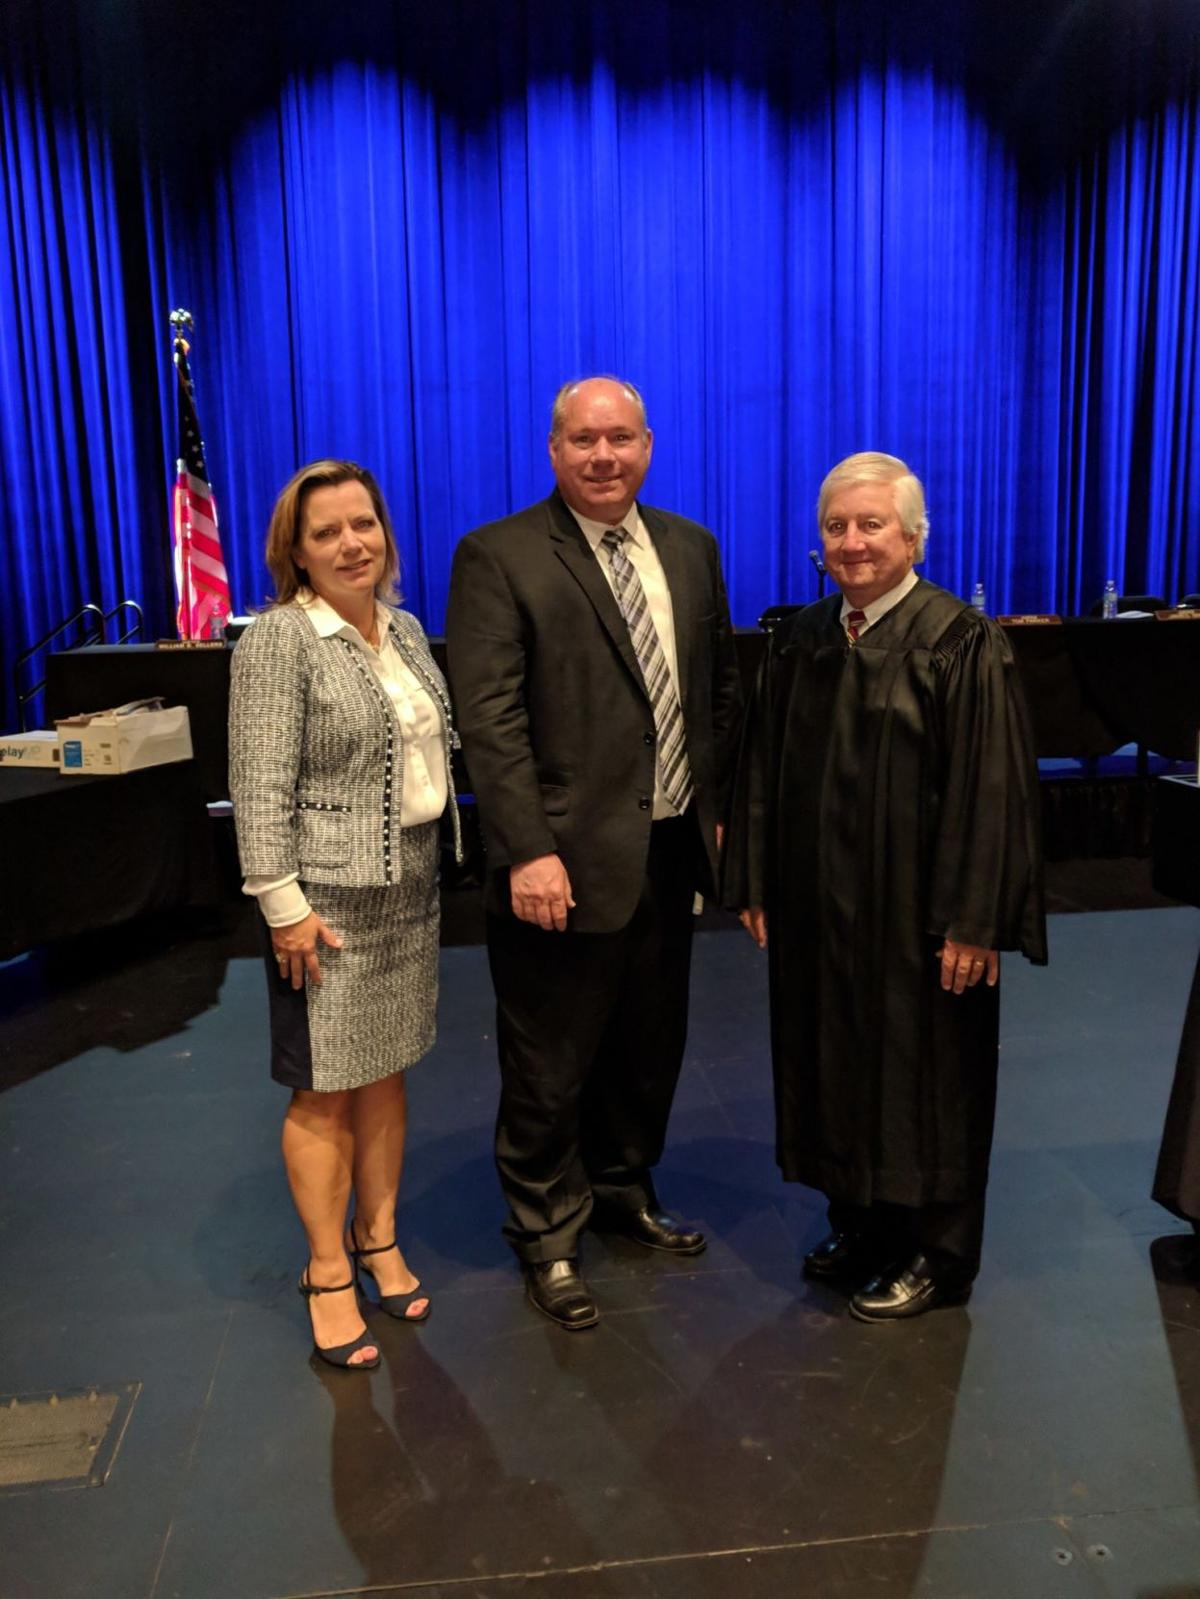 Attorney Christy Crow, Attorney Johnny Adams, and Alabama Supreme Court Justice Jim Main.